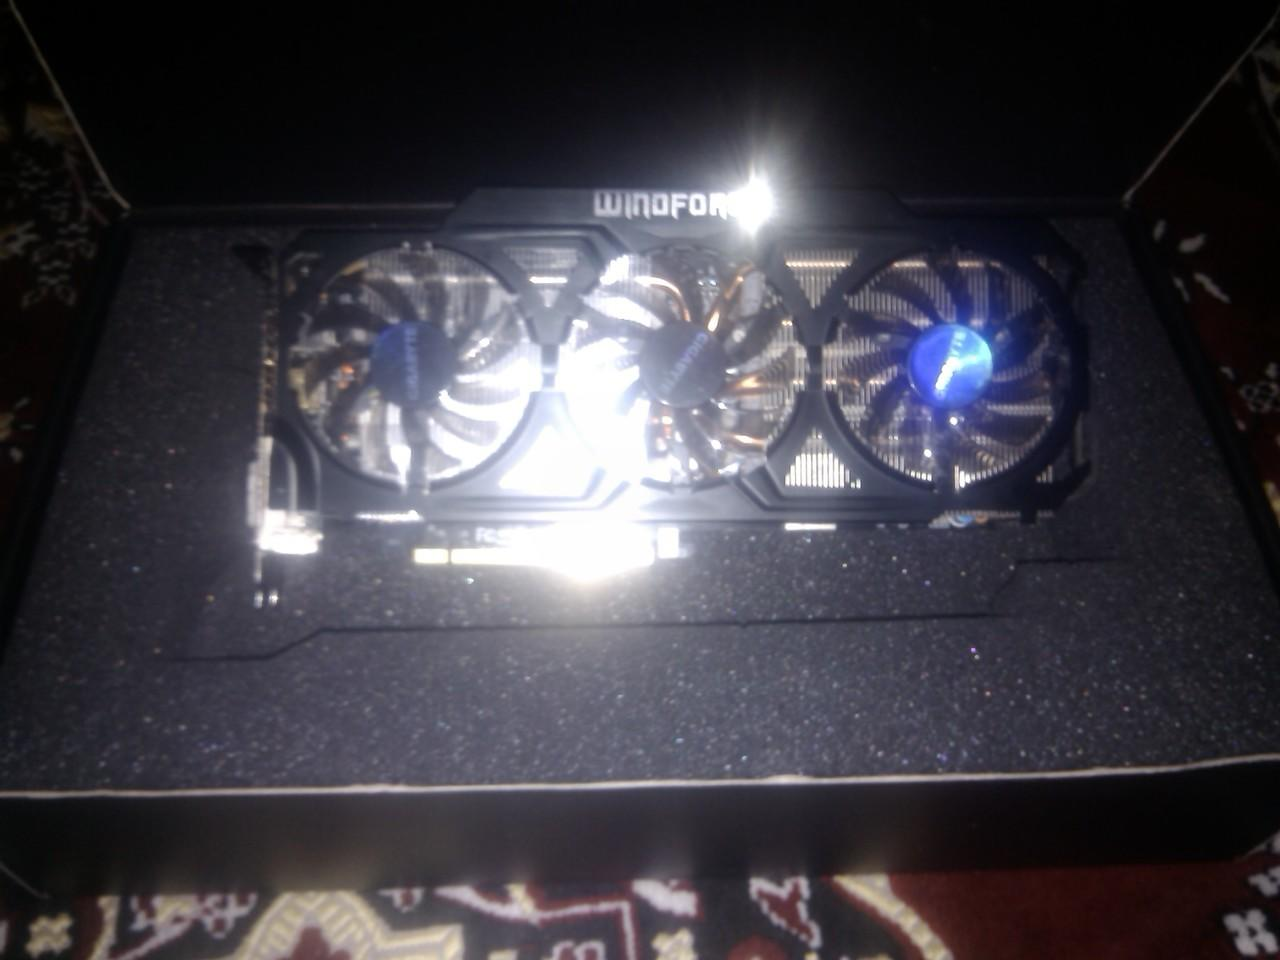 WTS Gigabyte Gtx 770 windforce triple fan